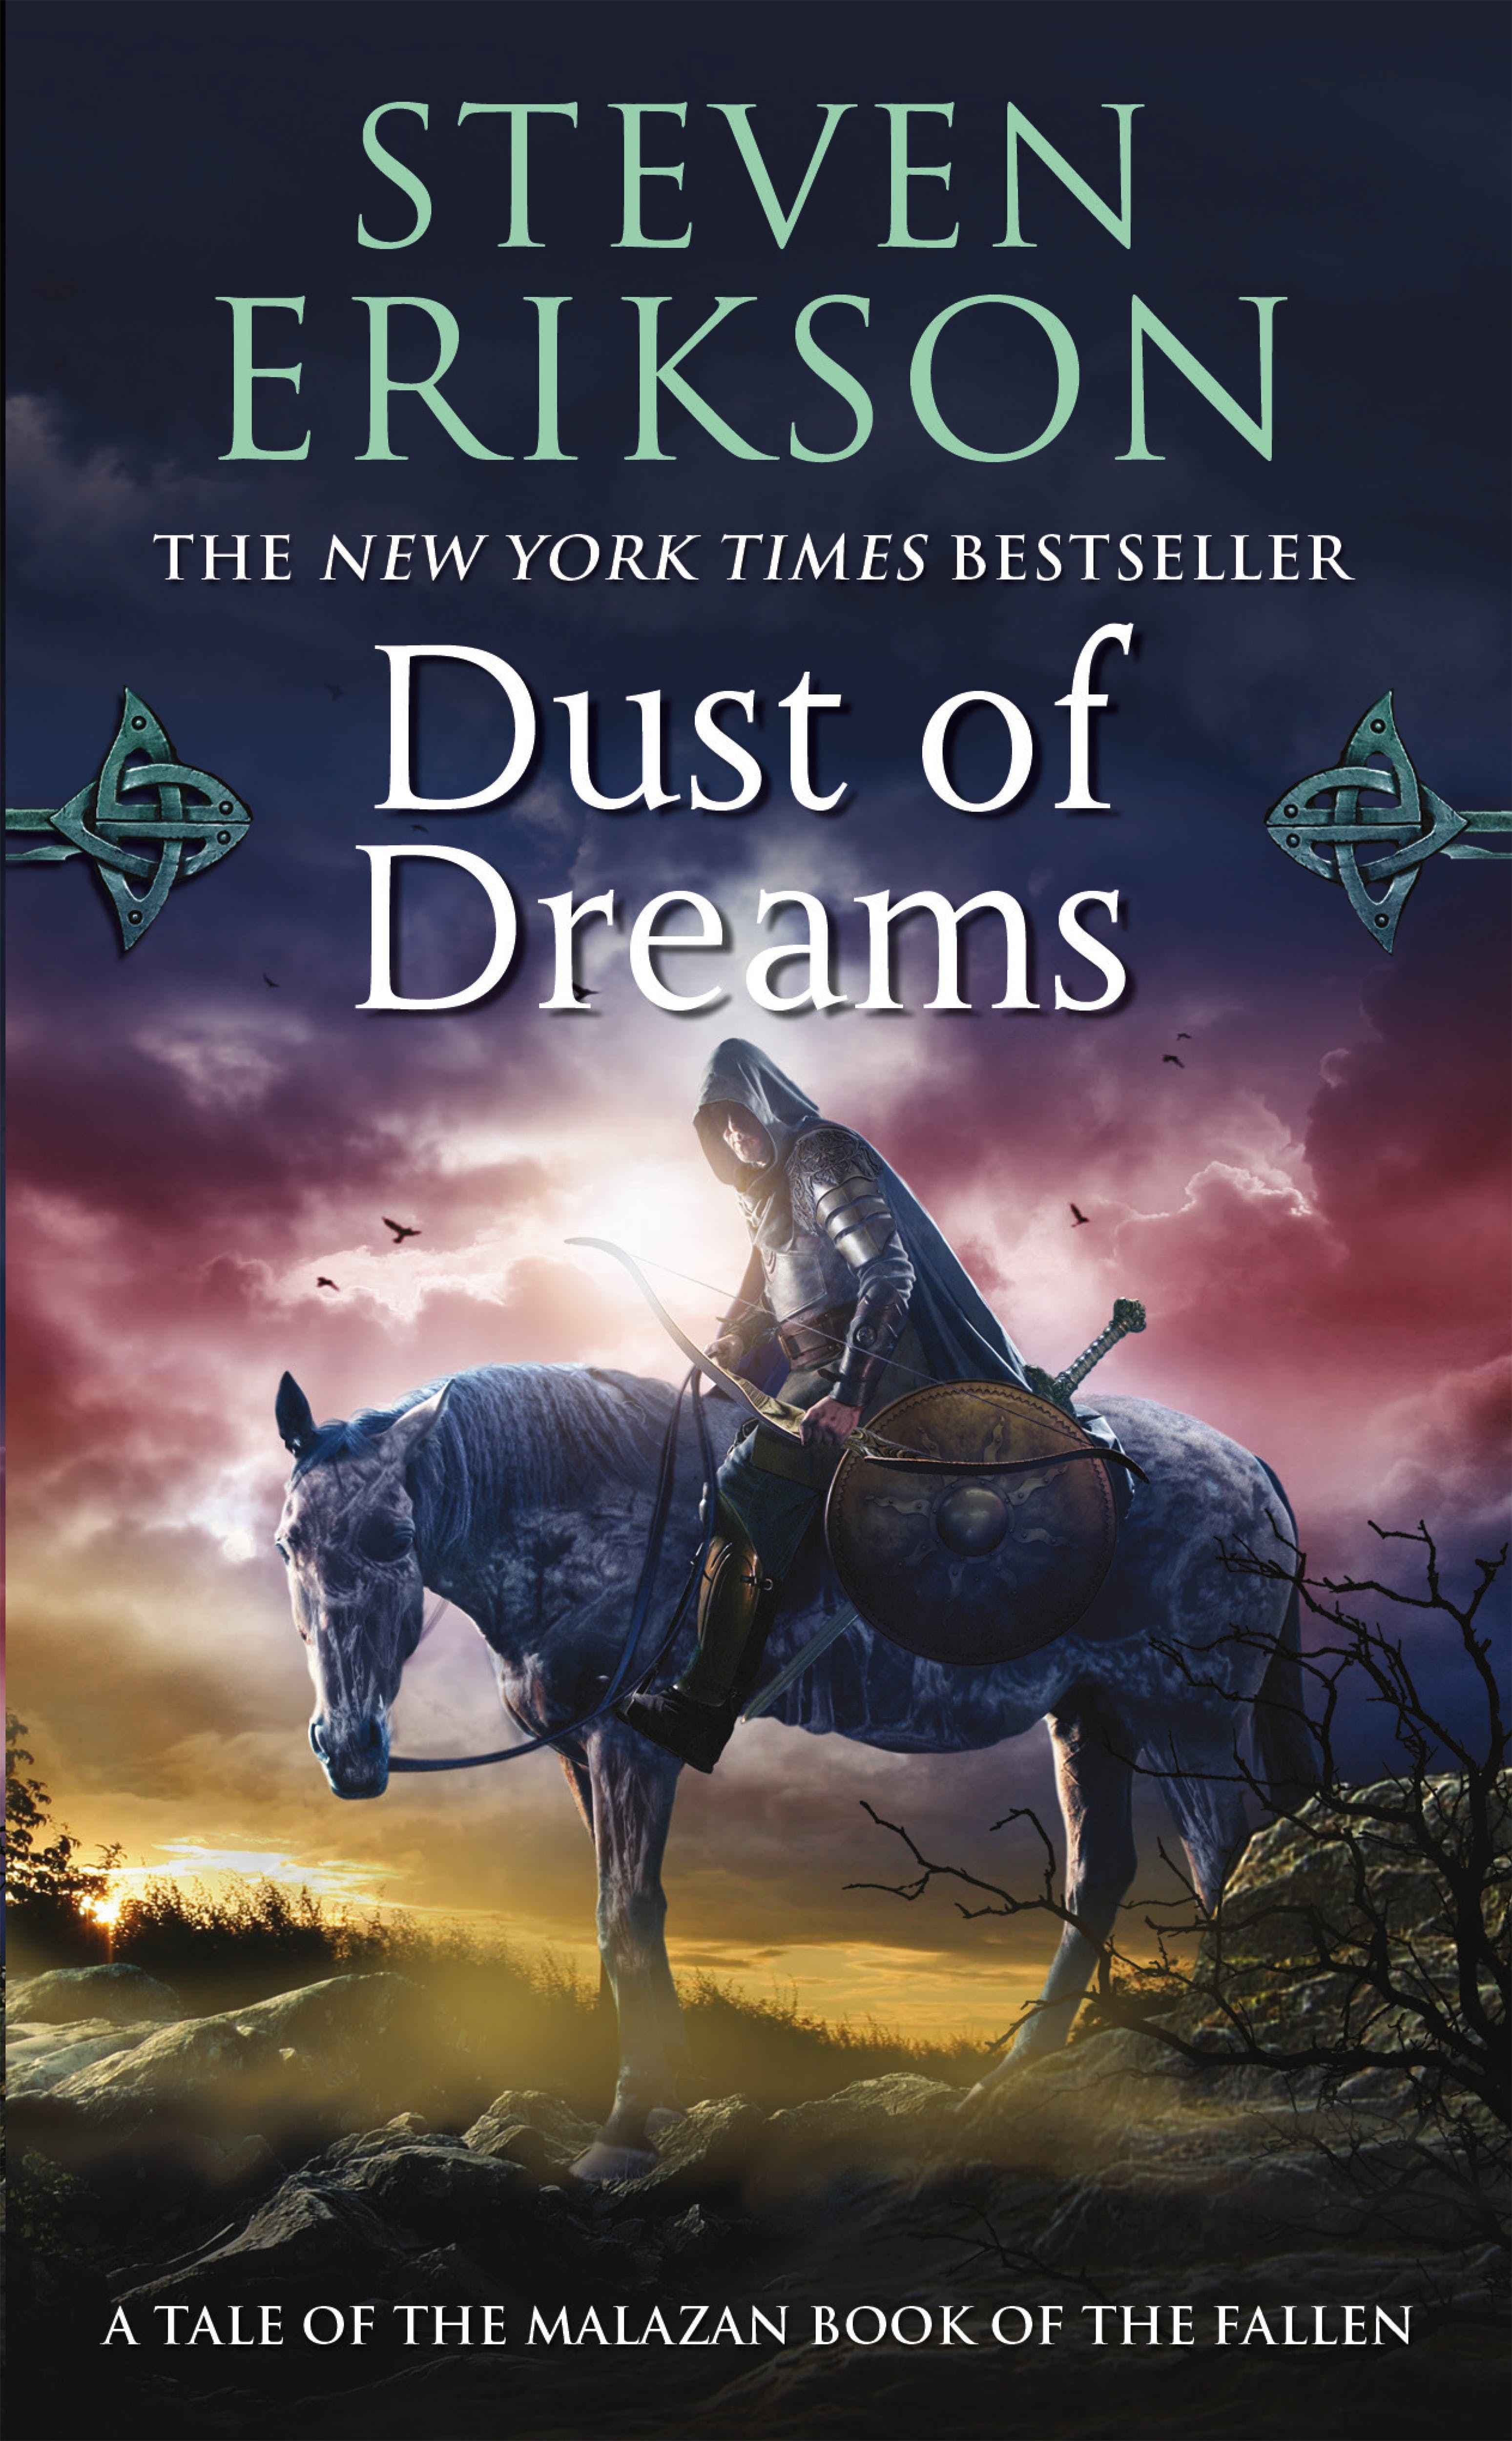 Image of Dust of Dreams